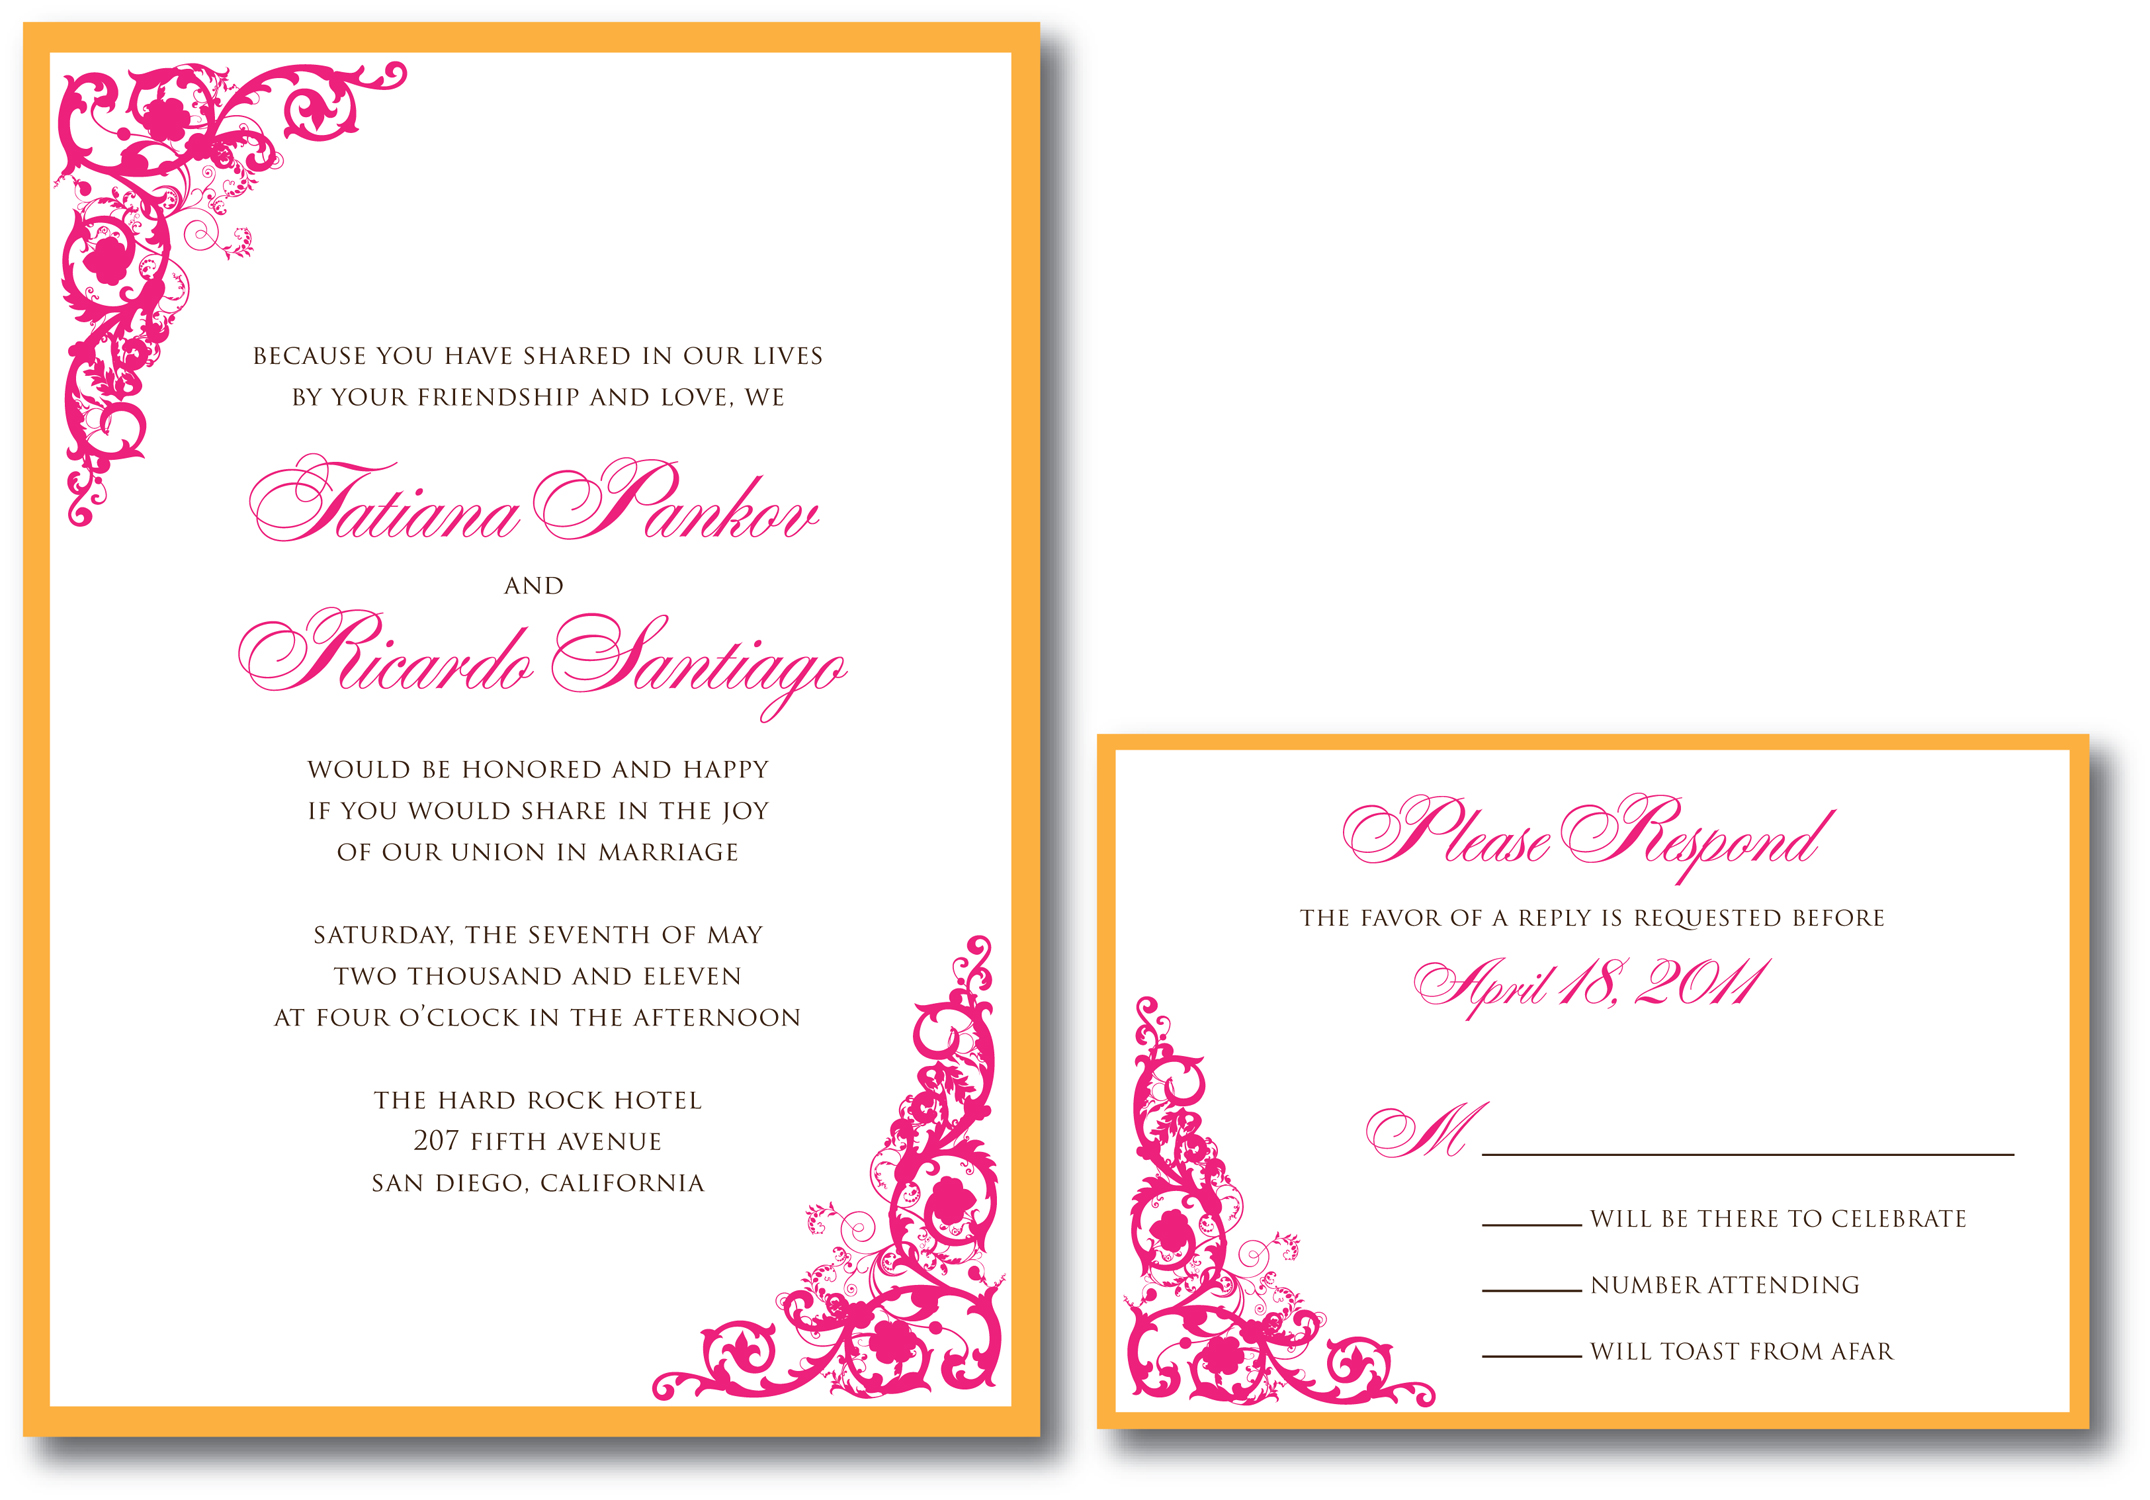 Fuschia And Orange Wedding Invitations: Fuchsia Wedding Invitation